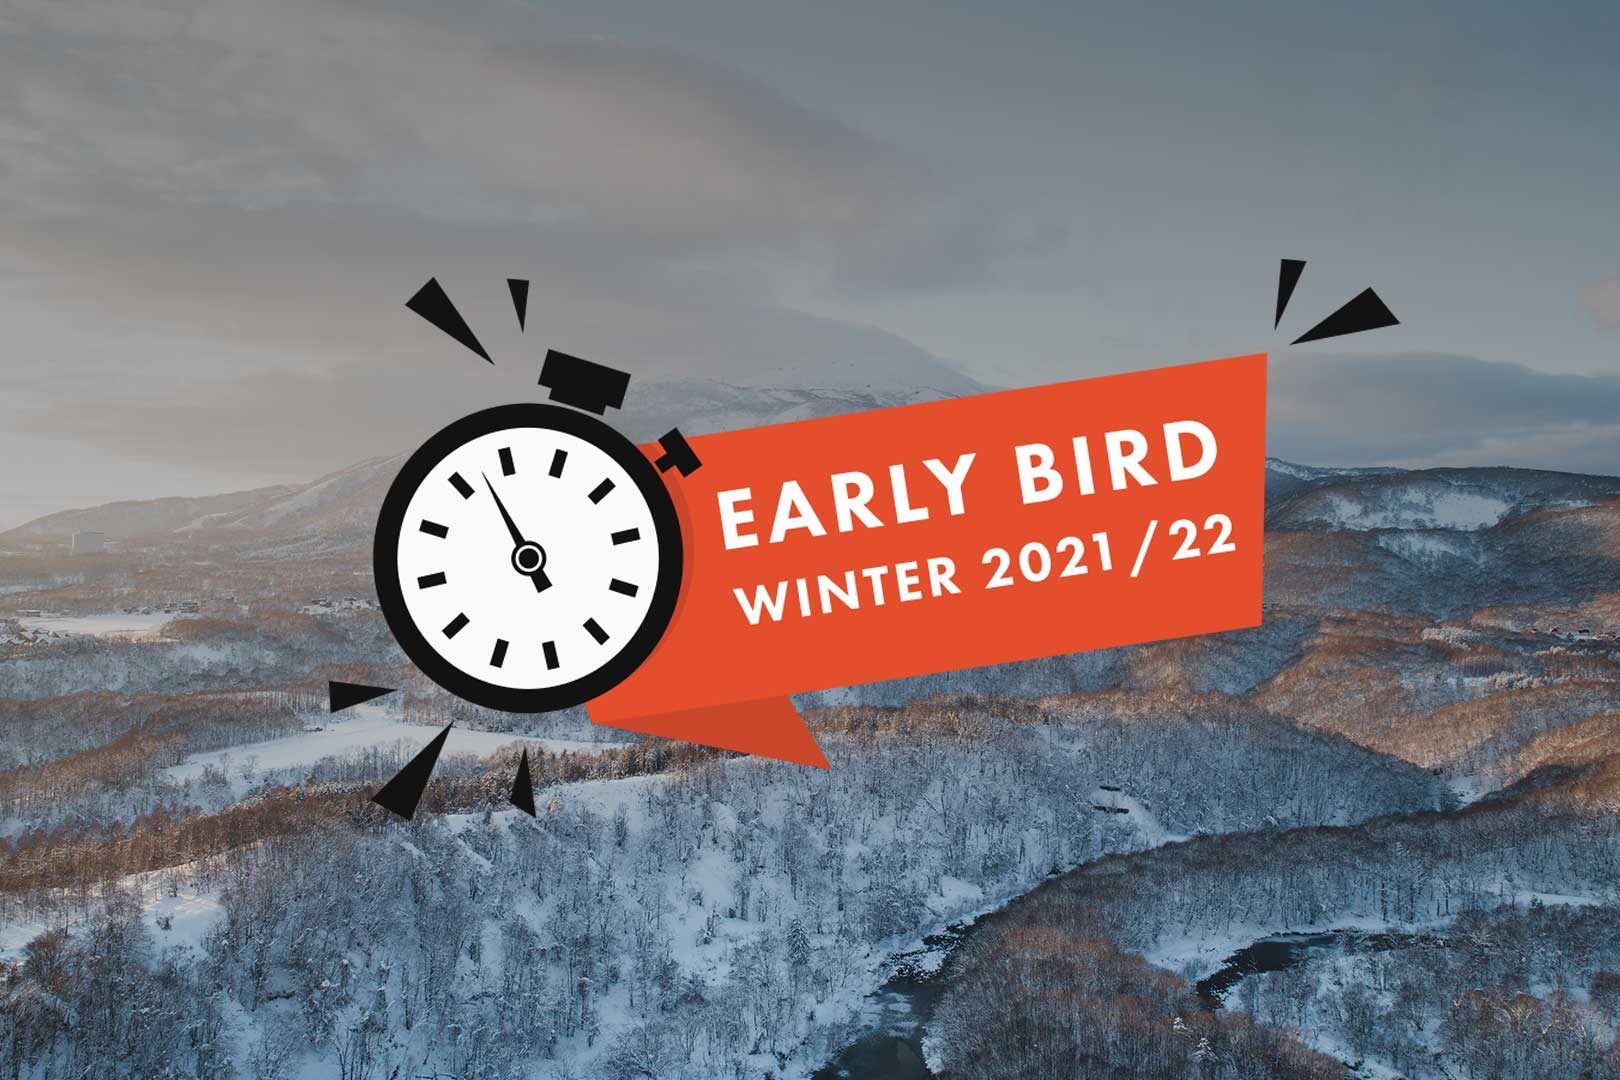 Winter 2021/22 Early Bird Promotion